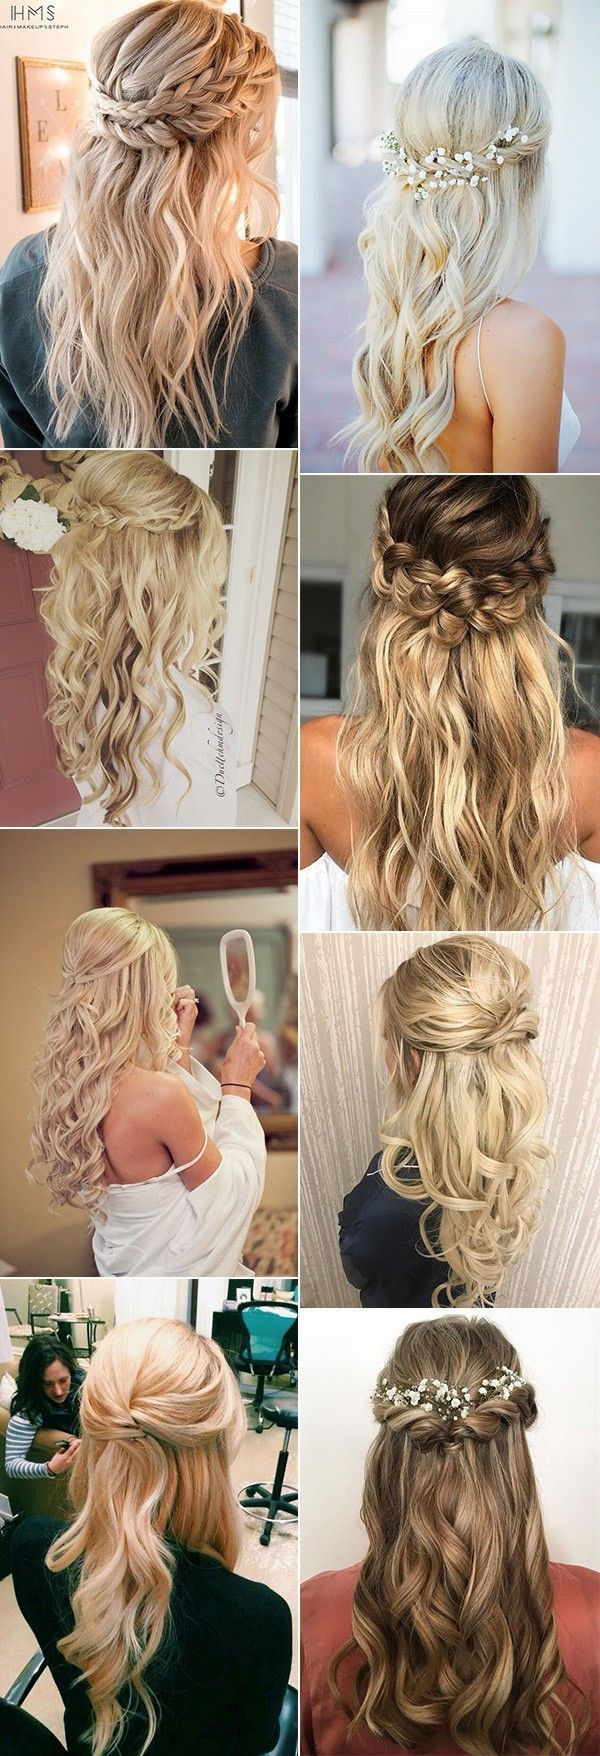 Chic half up half down wedding hairstyle ideas bunhairstyleshalf